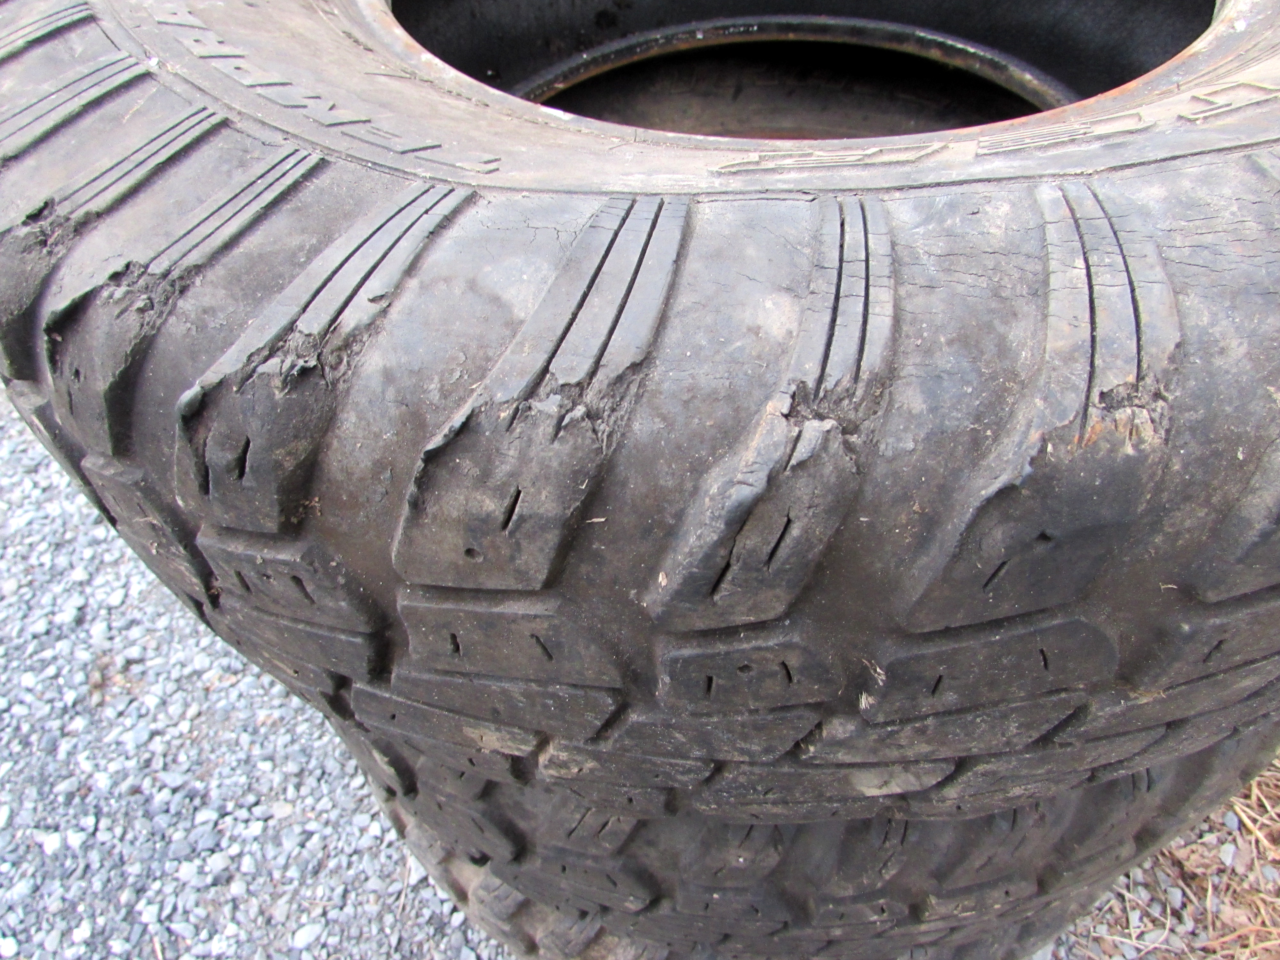 Mud Tires 005 of 10.png